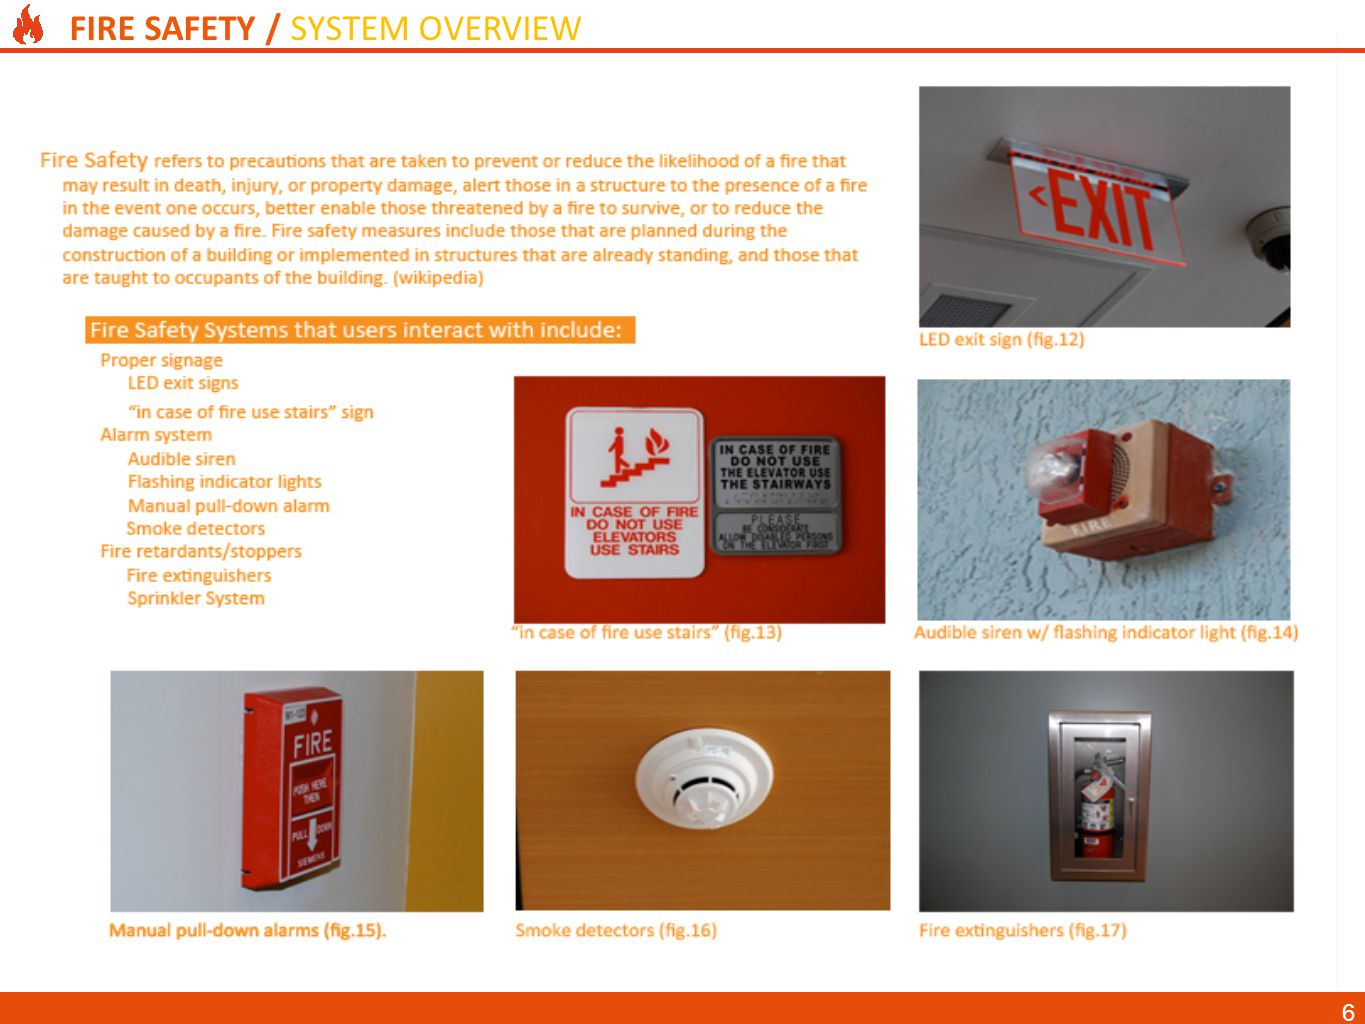 FIRE SAFETY / SYSTEM OVERVIEW 6